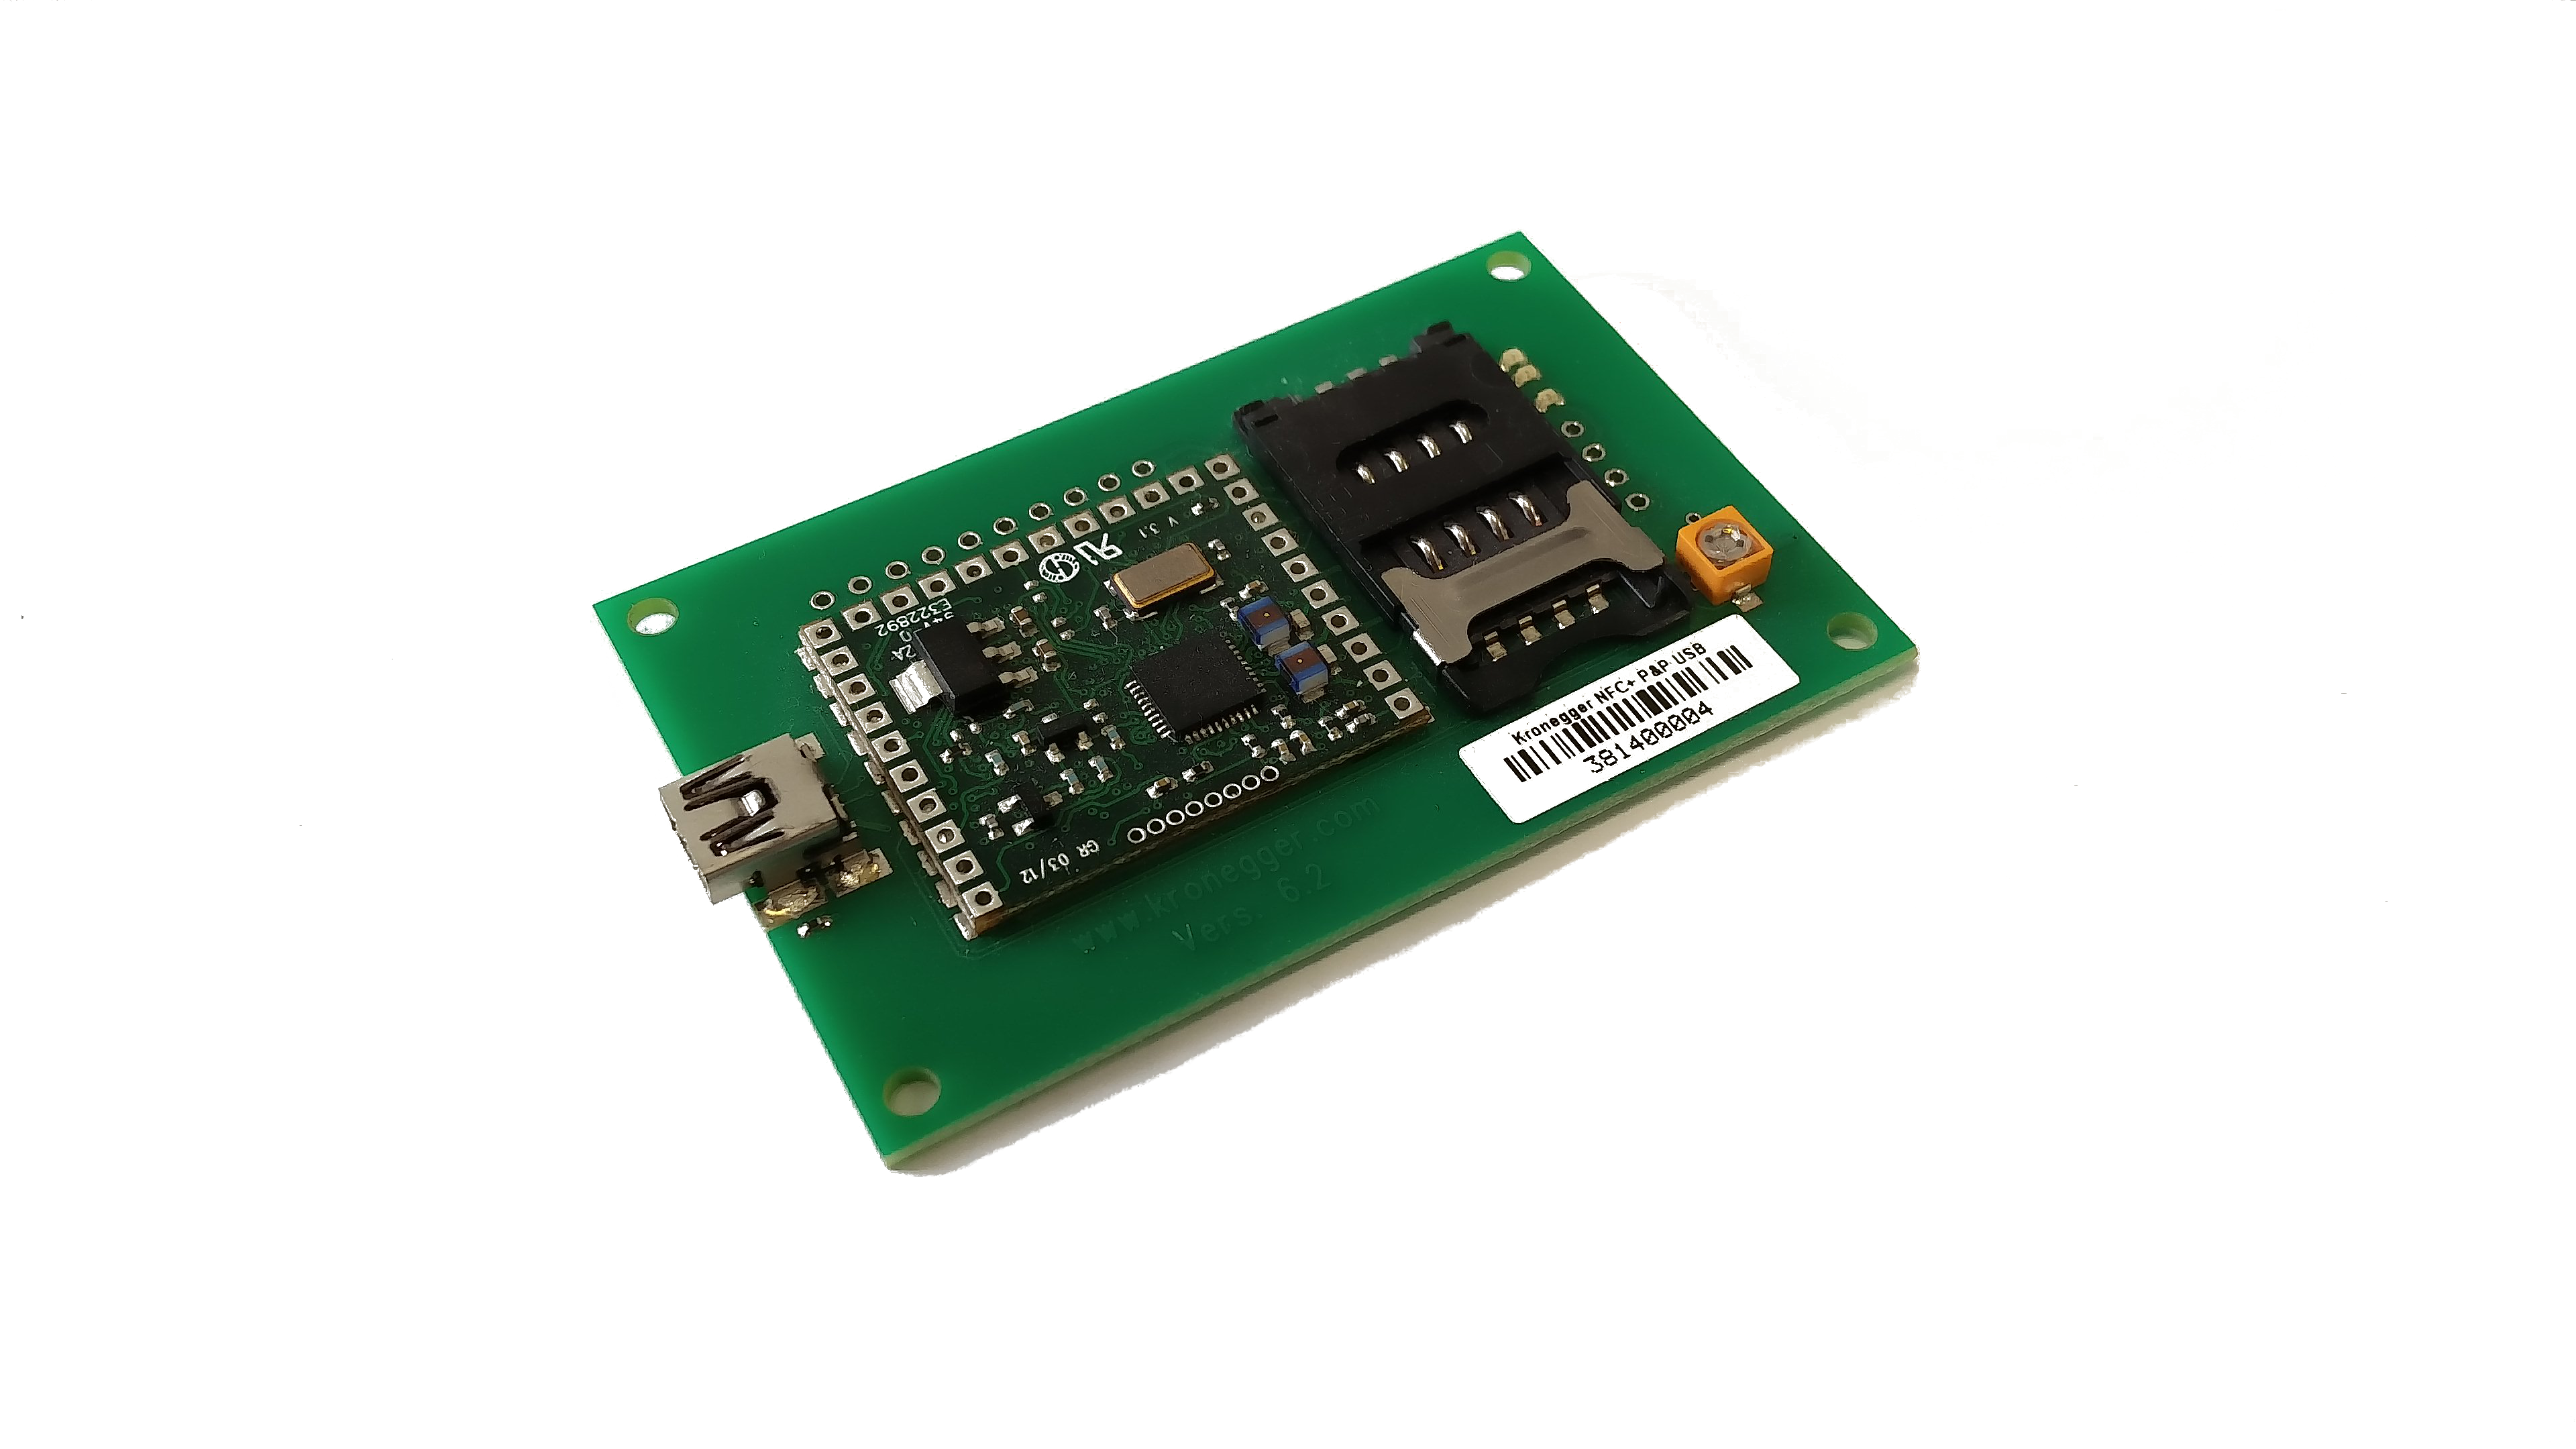 A complete Serial/USB Board, ready for plug it and start reading